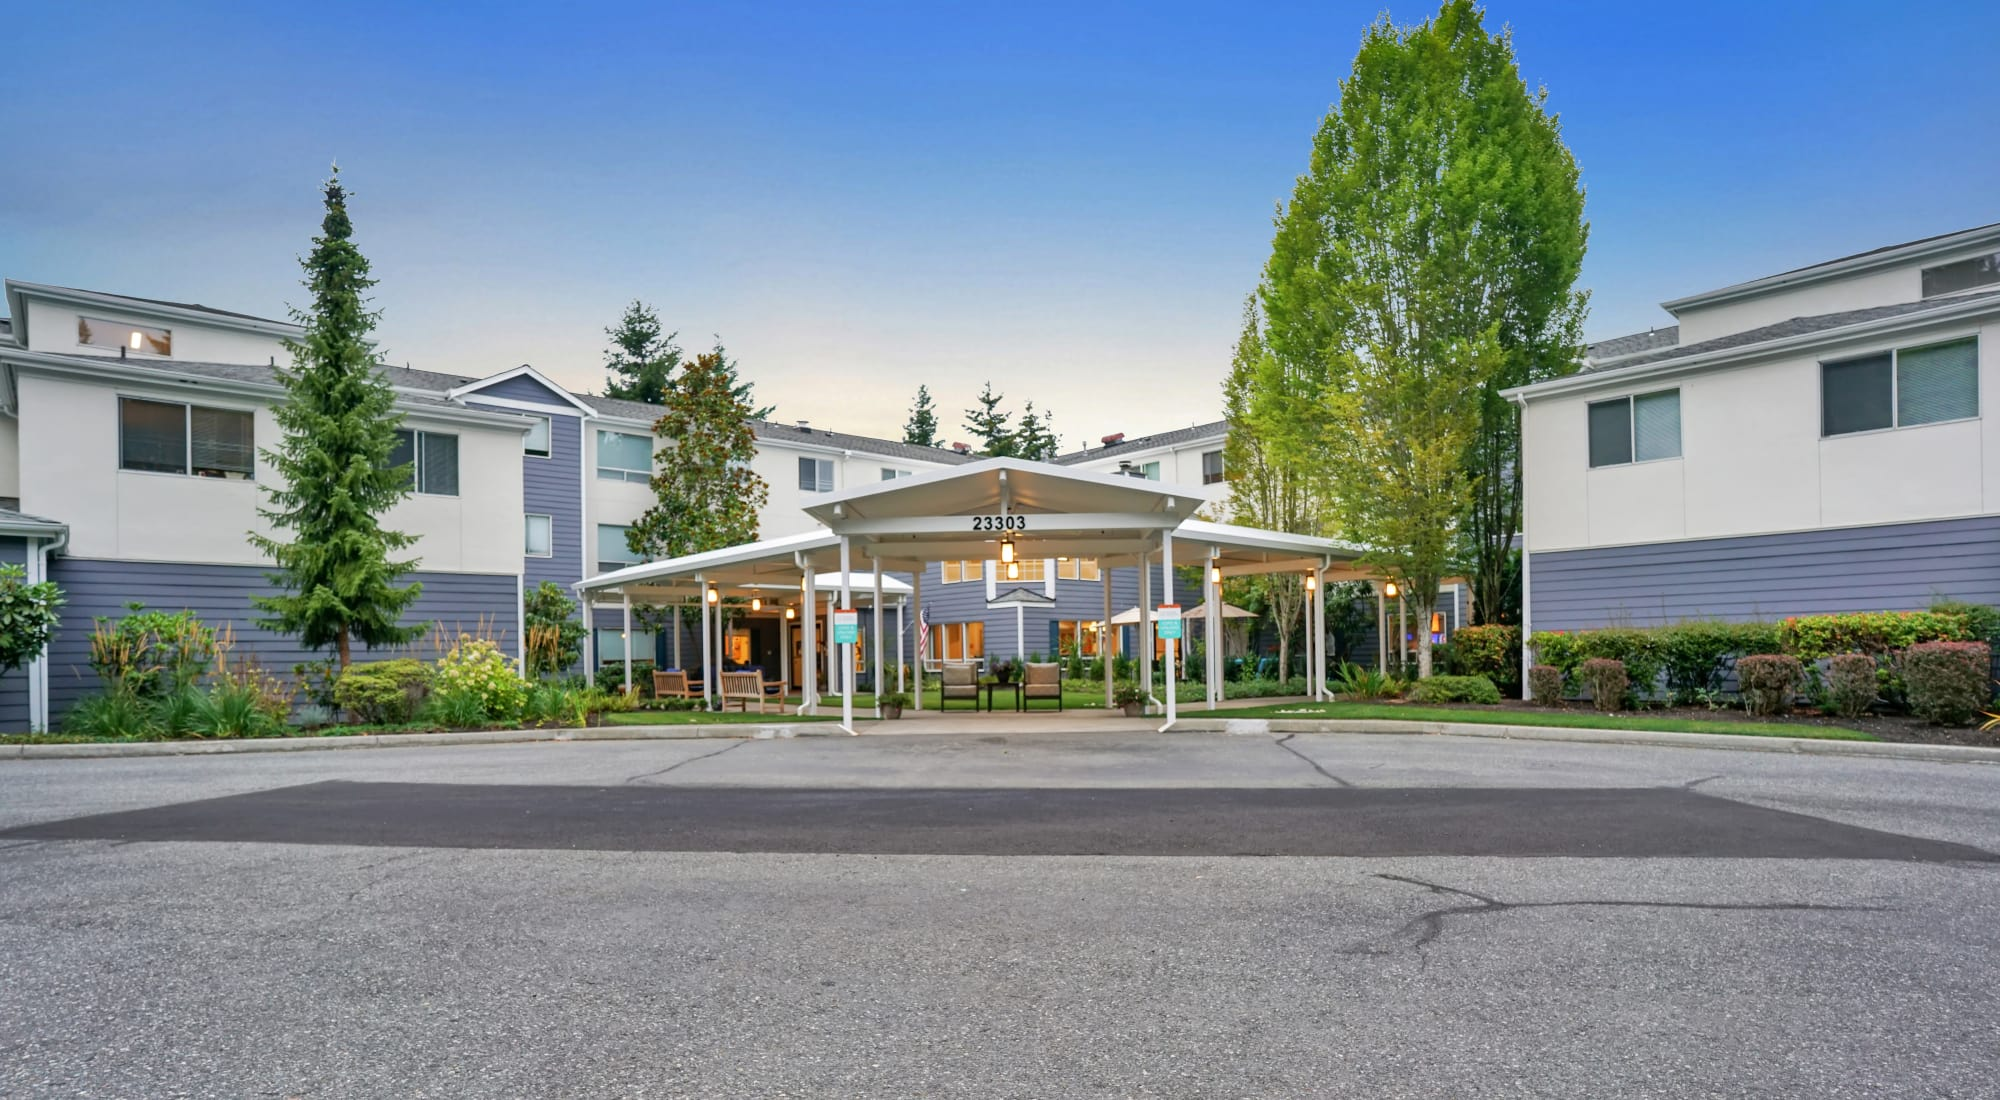 Entrance to building at Mountlake Terrace Plaza in Mountlake Terrace, Washington